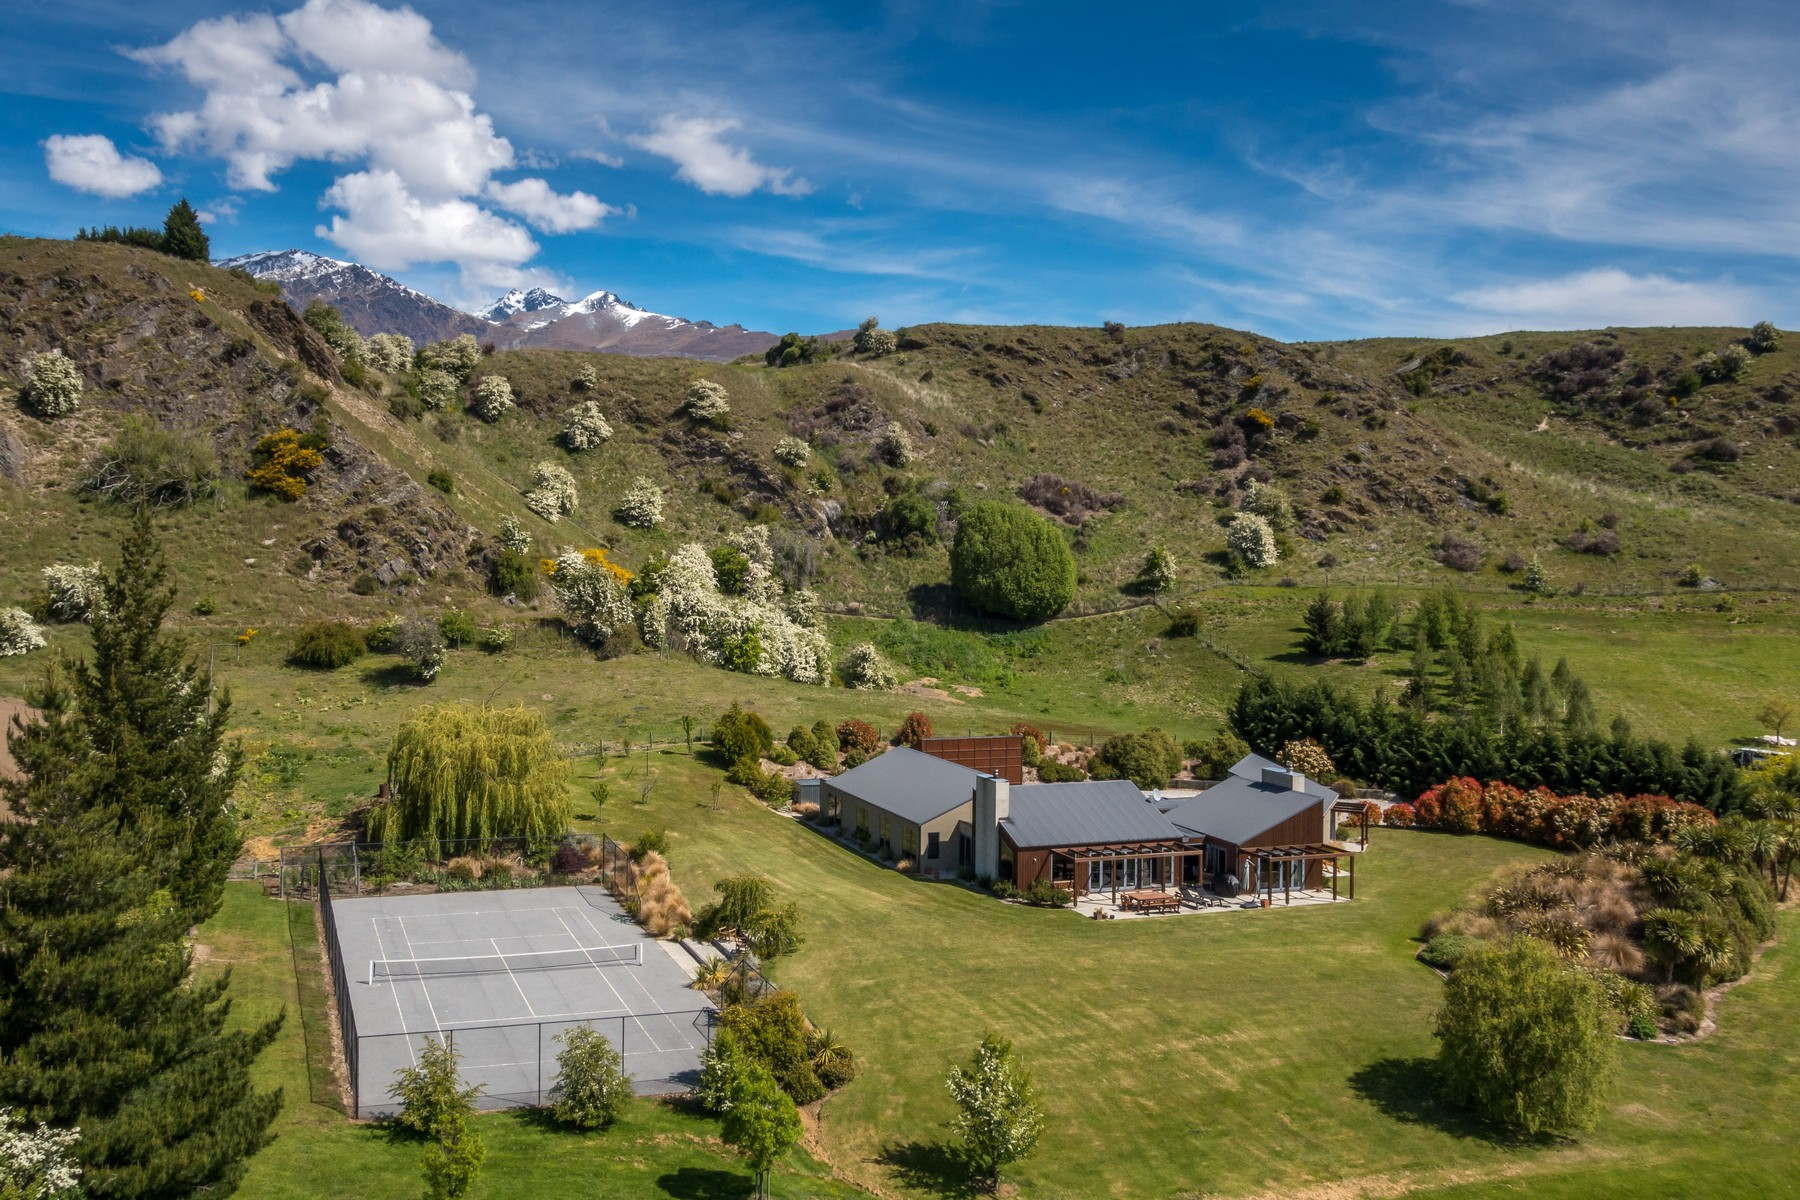 独户住宅 为 销售 在 110 Hogans Gully Road 110 Hogans Gully Road, Arrowtown Queenstown, 南部湖区 9371 新西兰